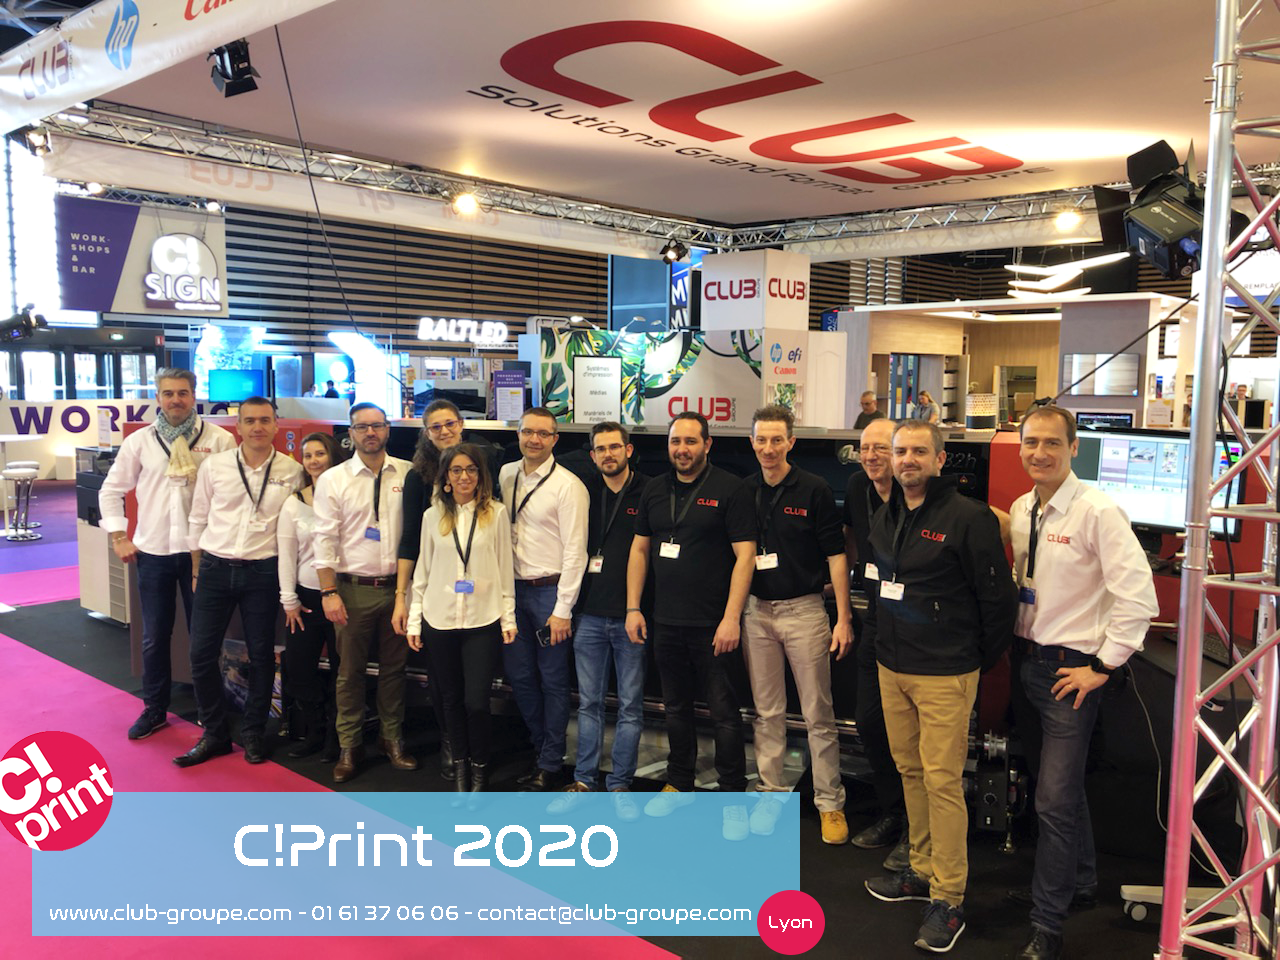 Club Groupe CPrint 2020